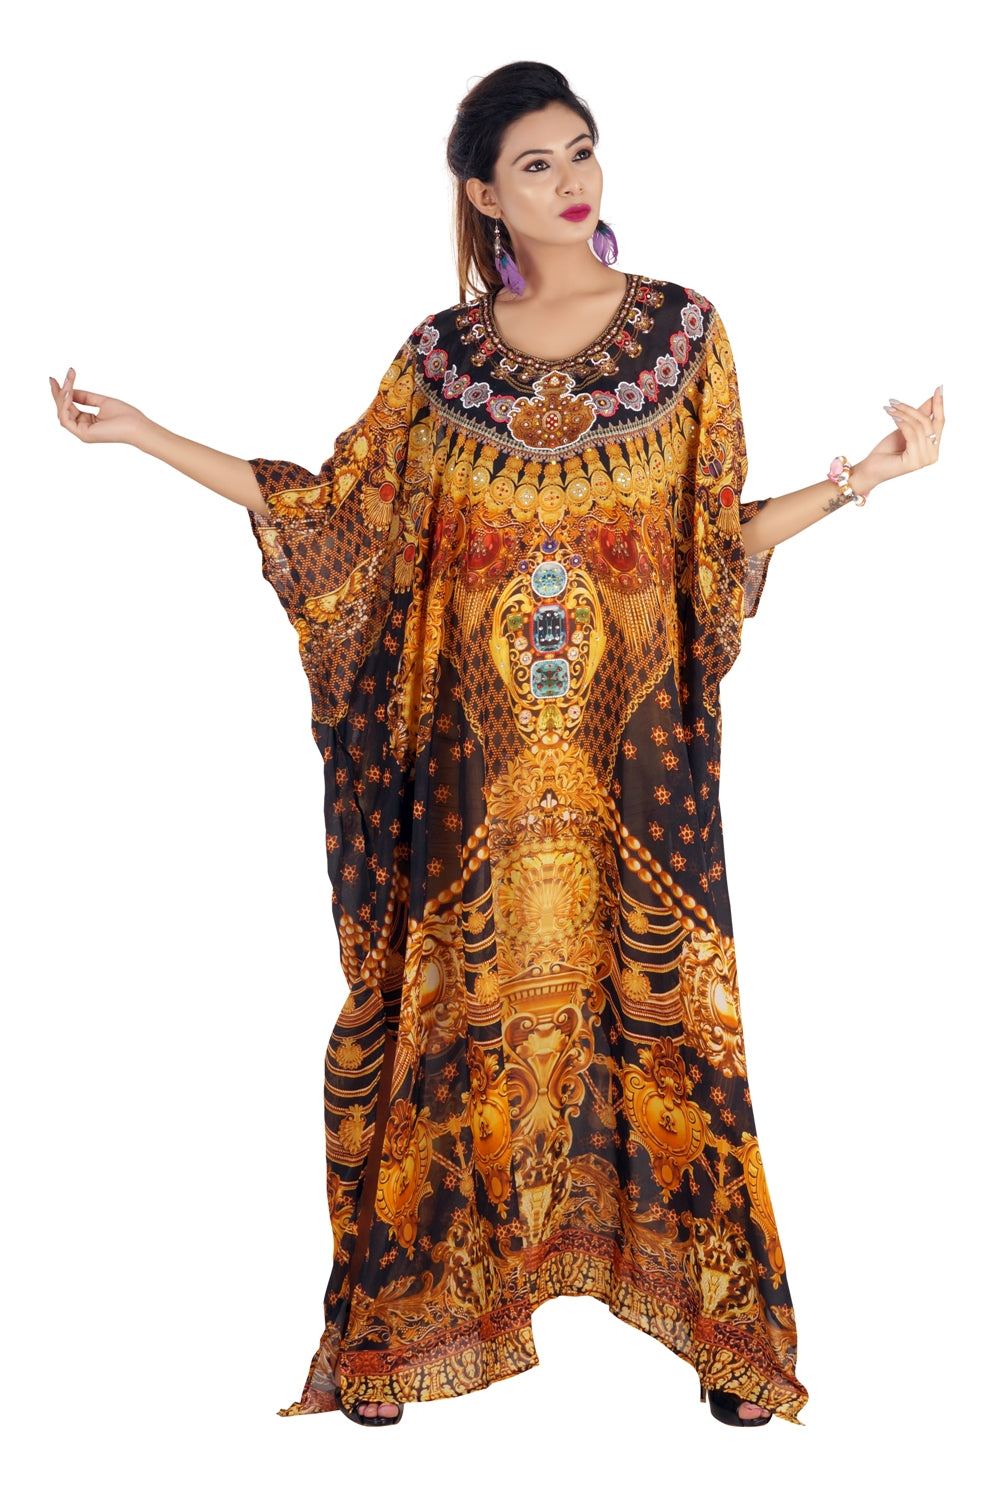 Divine Baroque Scroll Print over Luxe beach kaftan in golden color devotional style - Silk kaftan